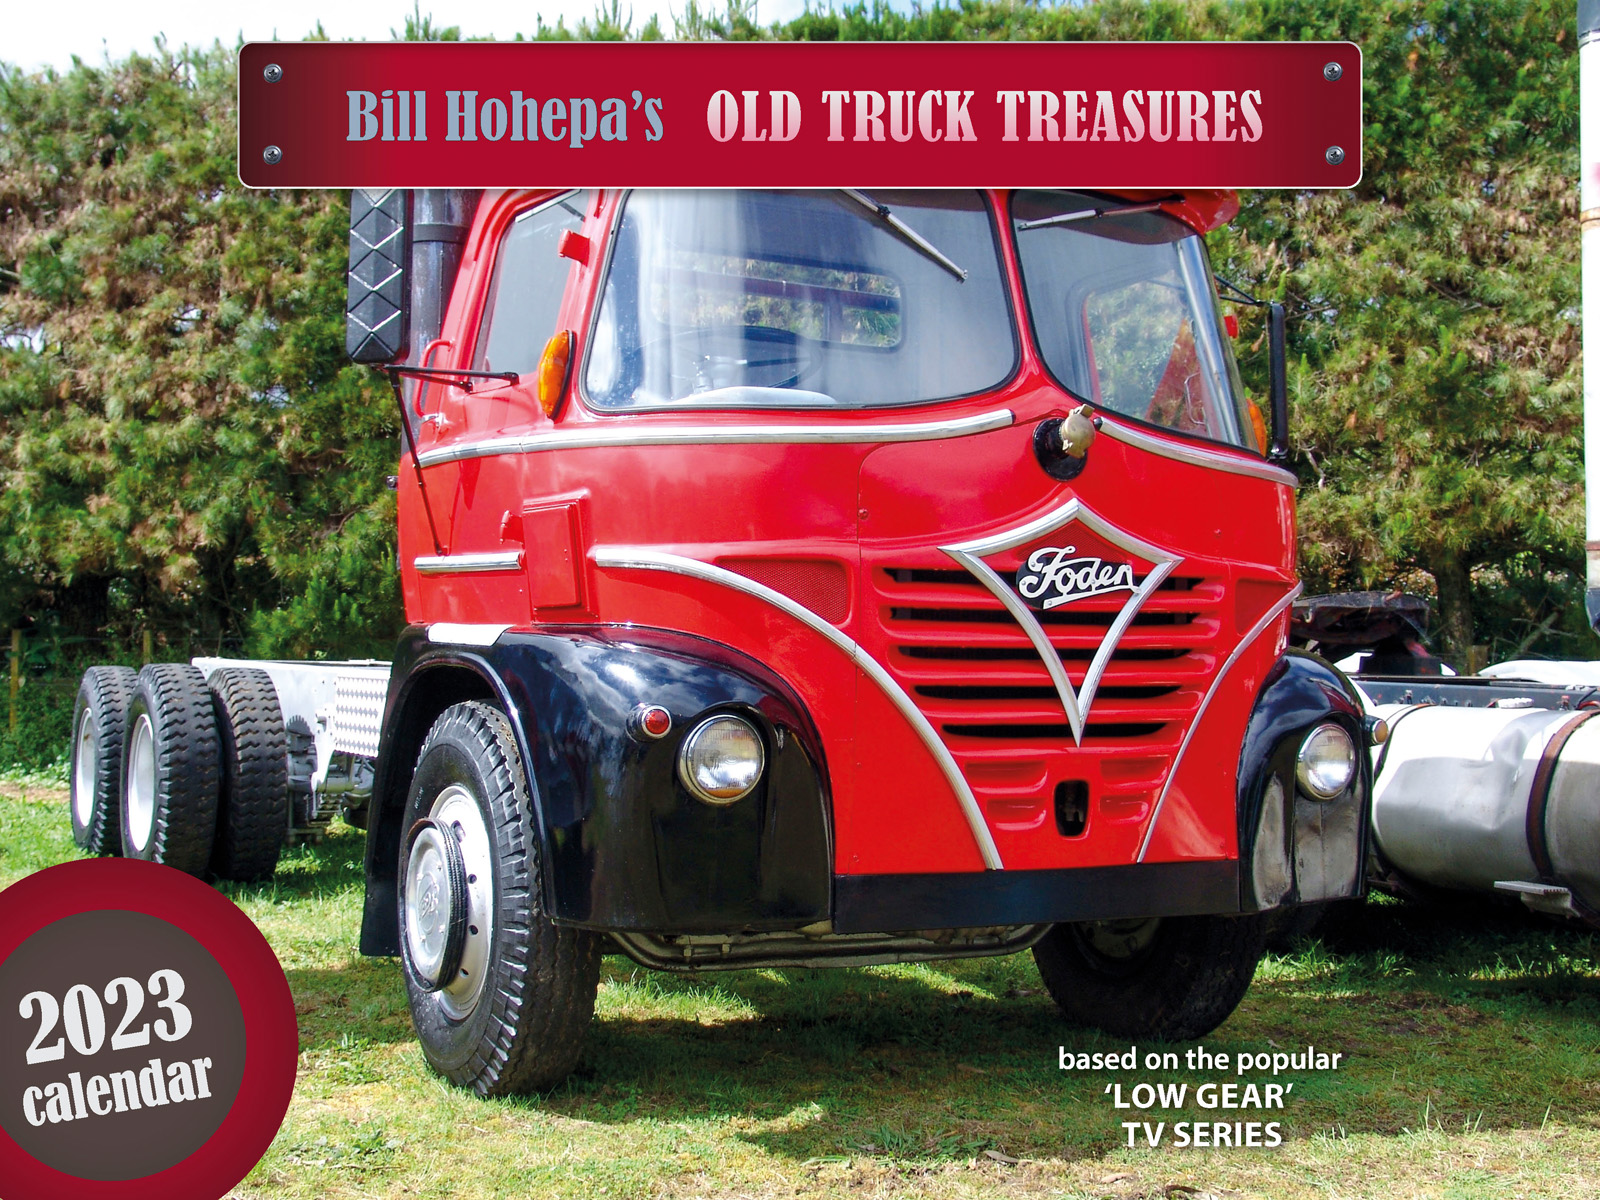 Bill Hohepa's Old Truck Treasures 2022